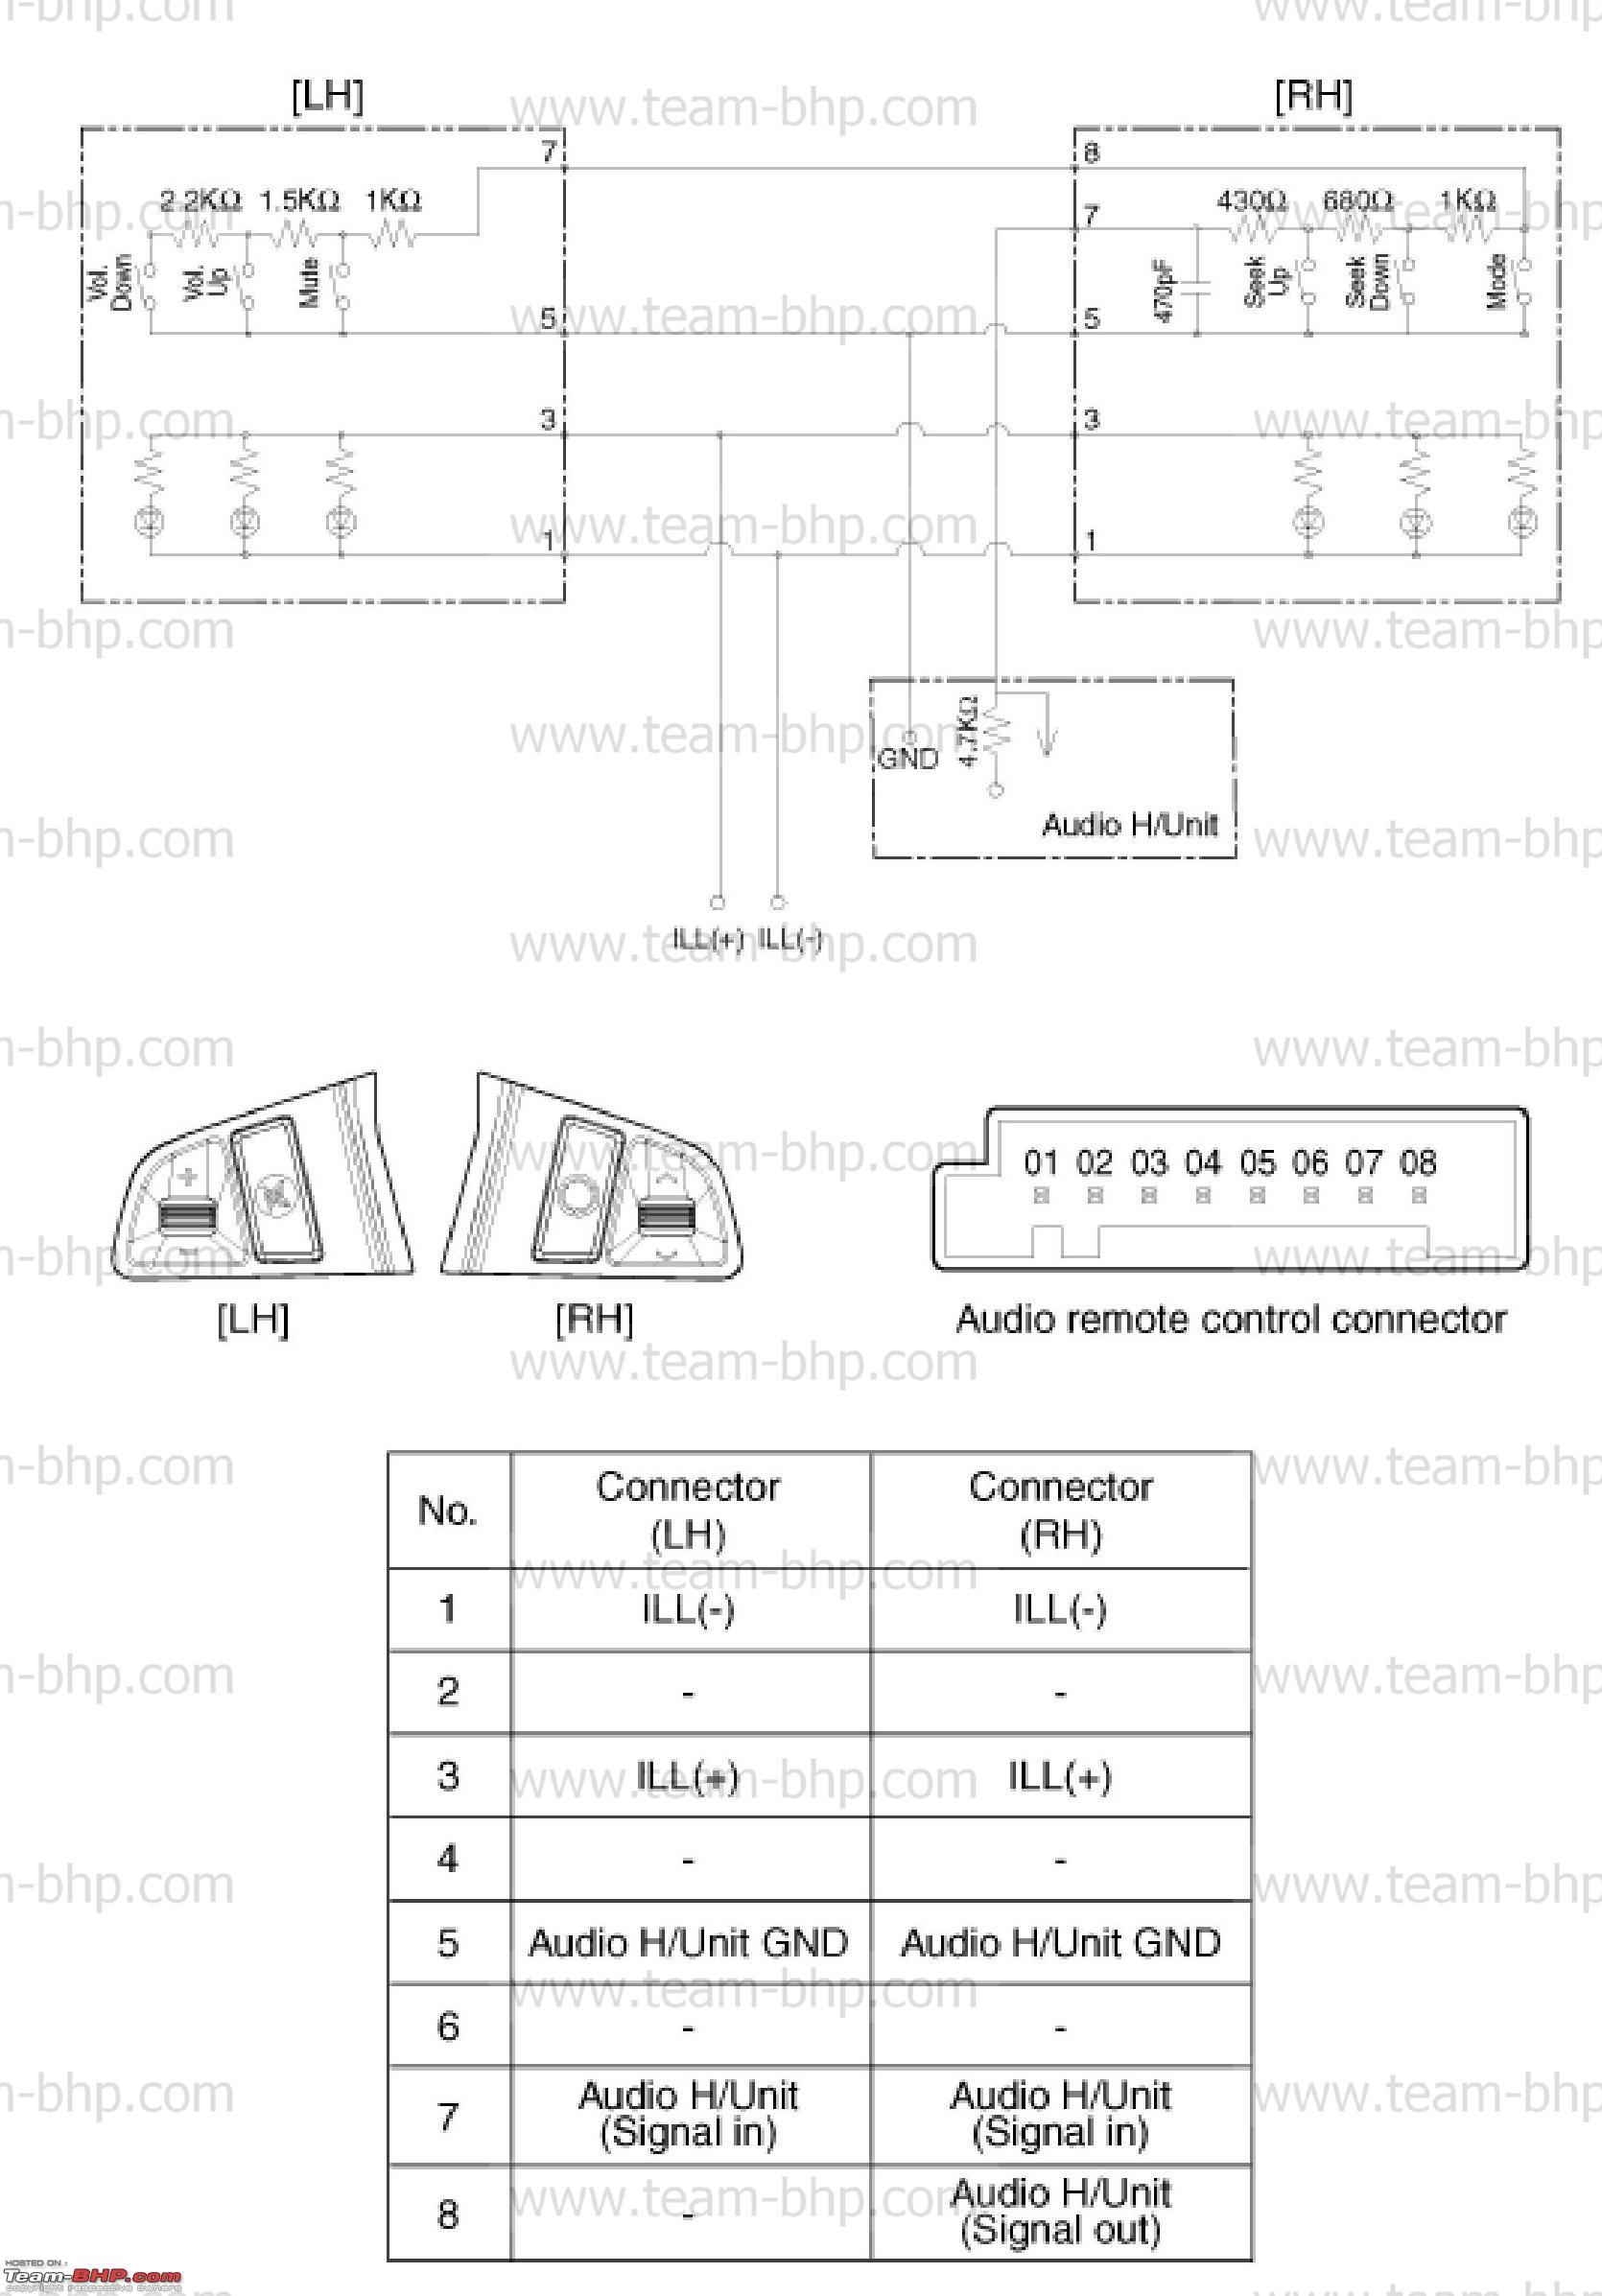 Hyundai I20 Electrical Wiring Diagram And Schematics Mp3 03 Harley Davidson Speakers Circuit Schematic Source Take Out Your Hu Audio Rc Dia